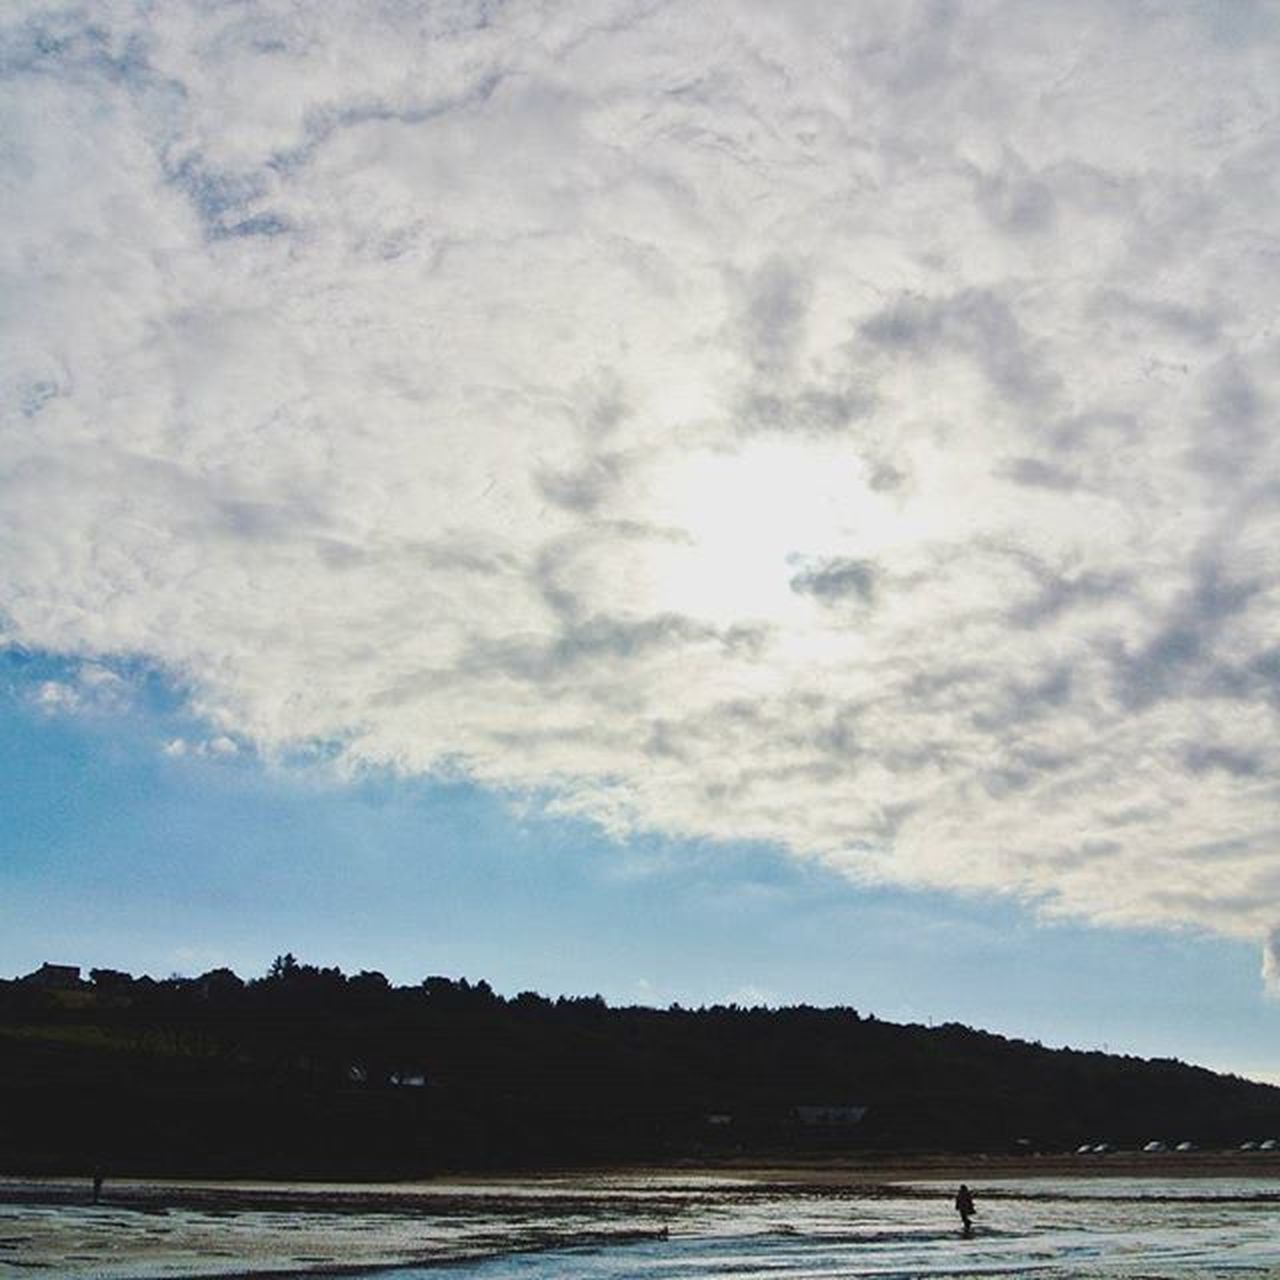 Cloudy Sky ☁☁☁🌊 Found this looking back through some old pictures of this term Nature Clouds Beach Sky Skylovers Naturelovers Trees Skyline Pixelpanda Ig_nature